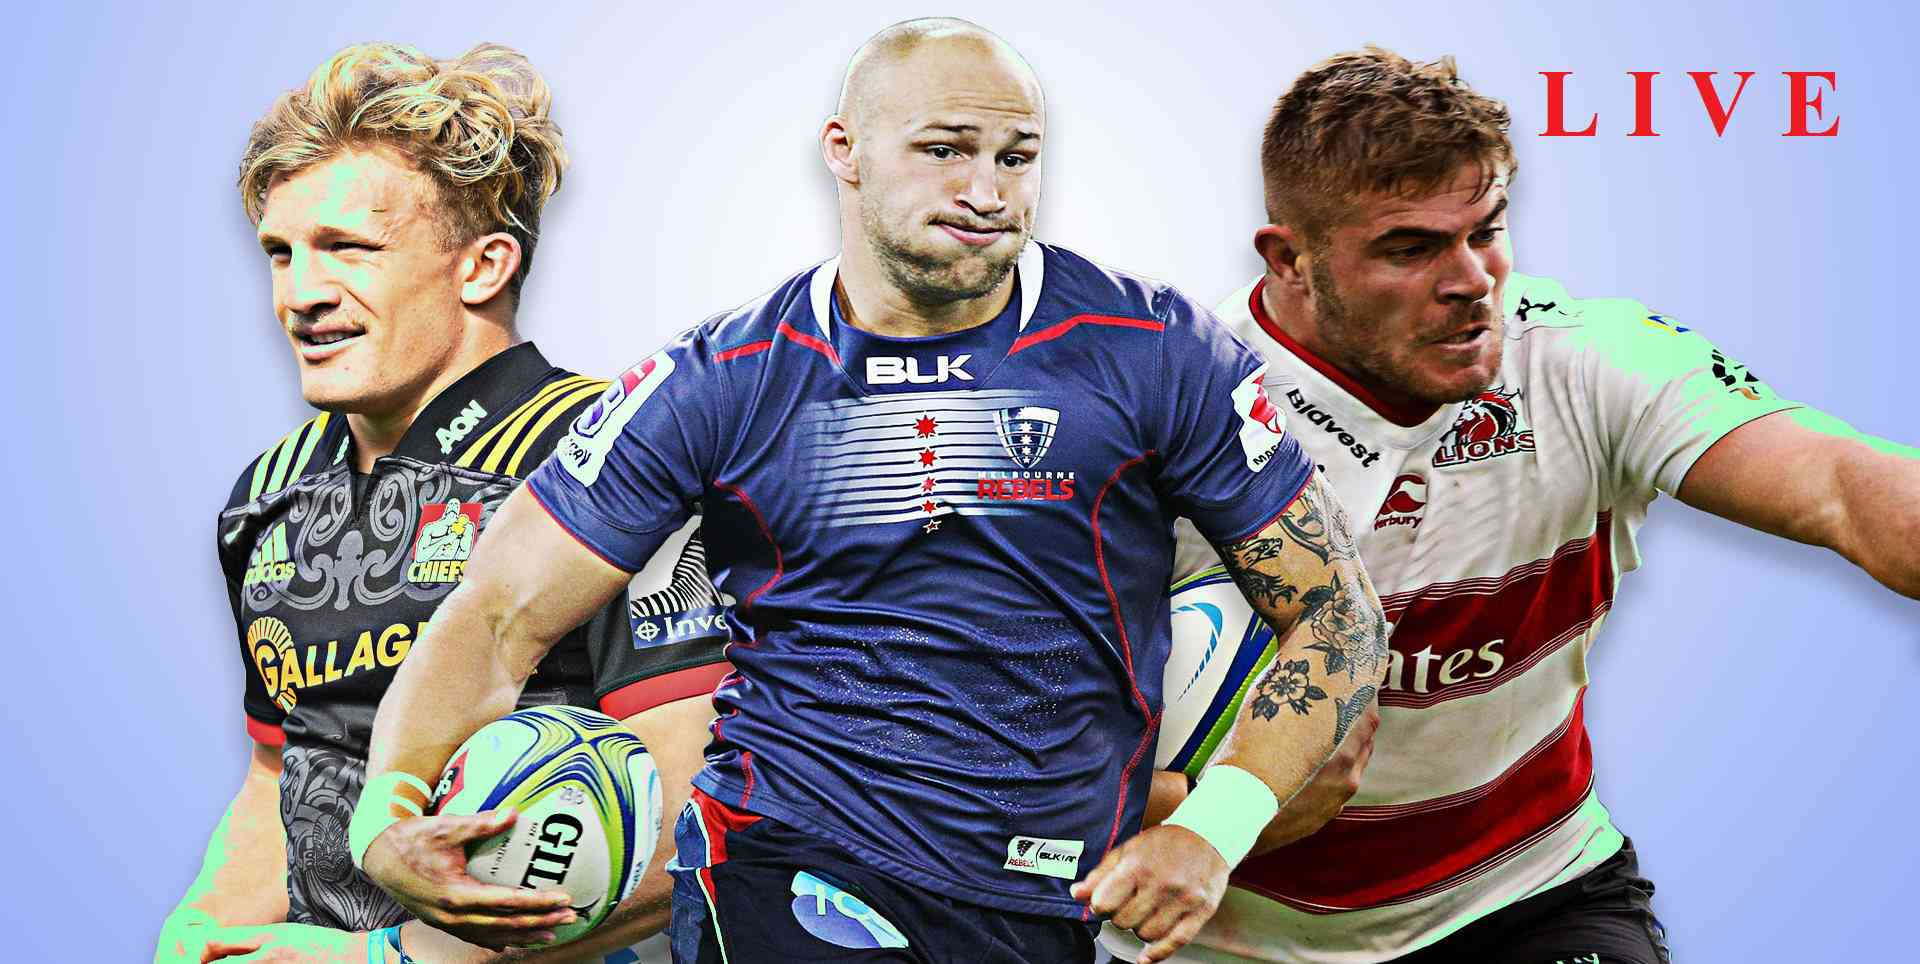 reds-vs-blues-rugby-live